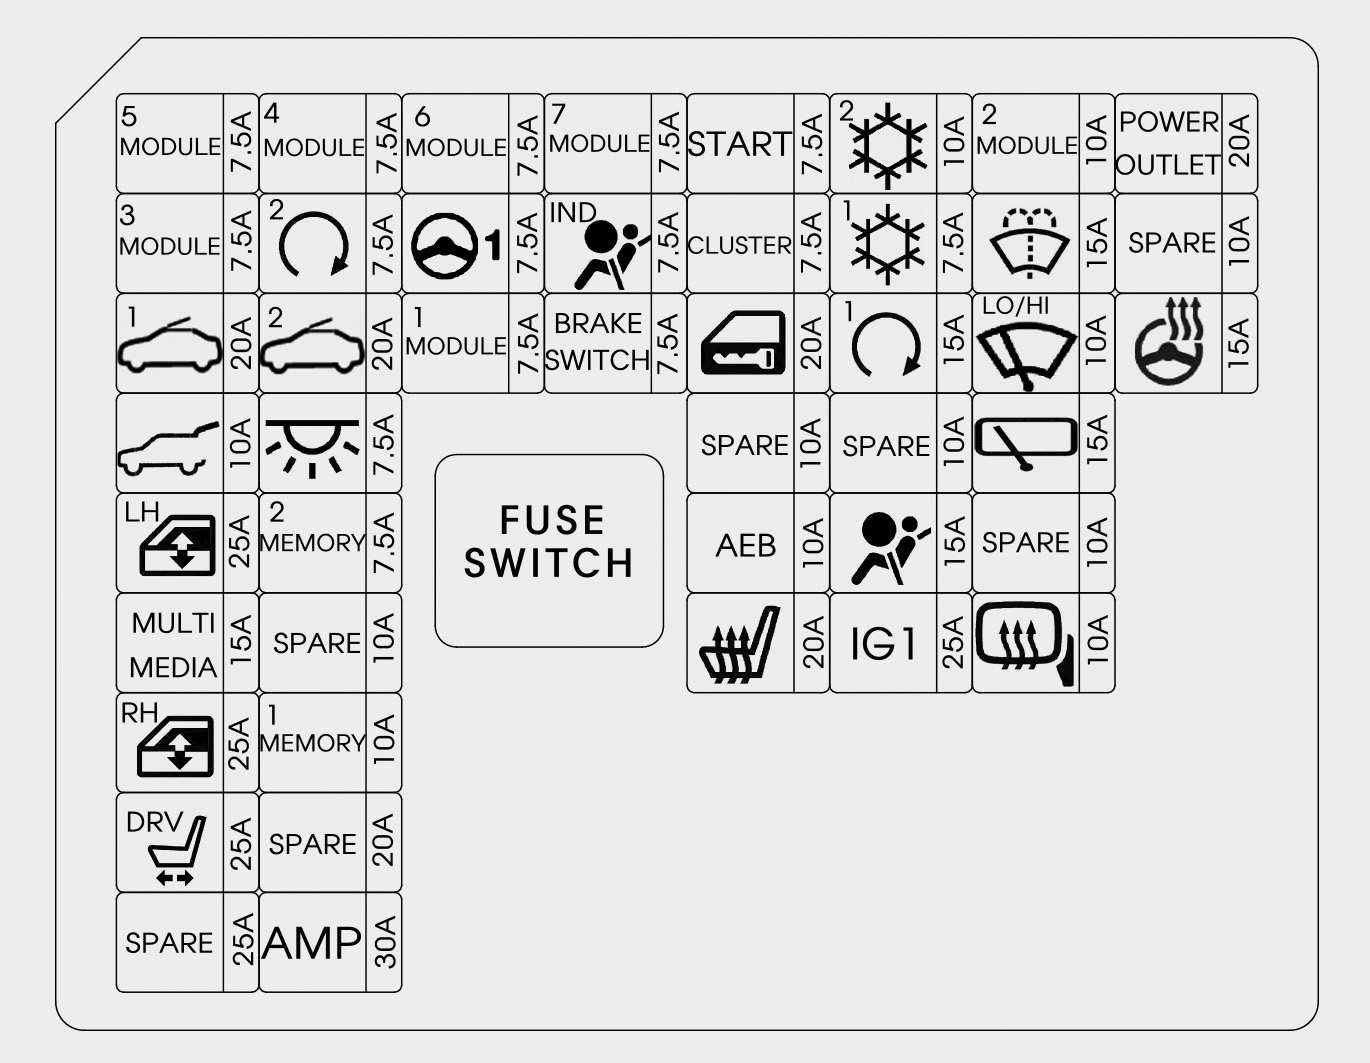 Fuse Box 2008 Hyundai Elantra Wiring Library 2002 Xg350 Diagram 2009 Accent Detailed Schematics Rh Keyplusrubber Com 2000